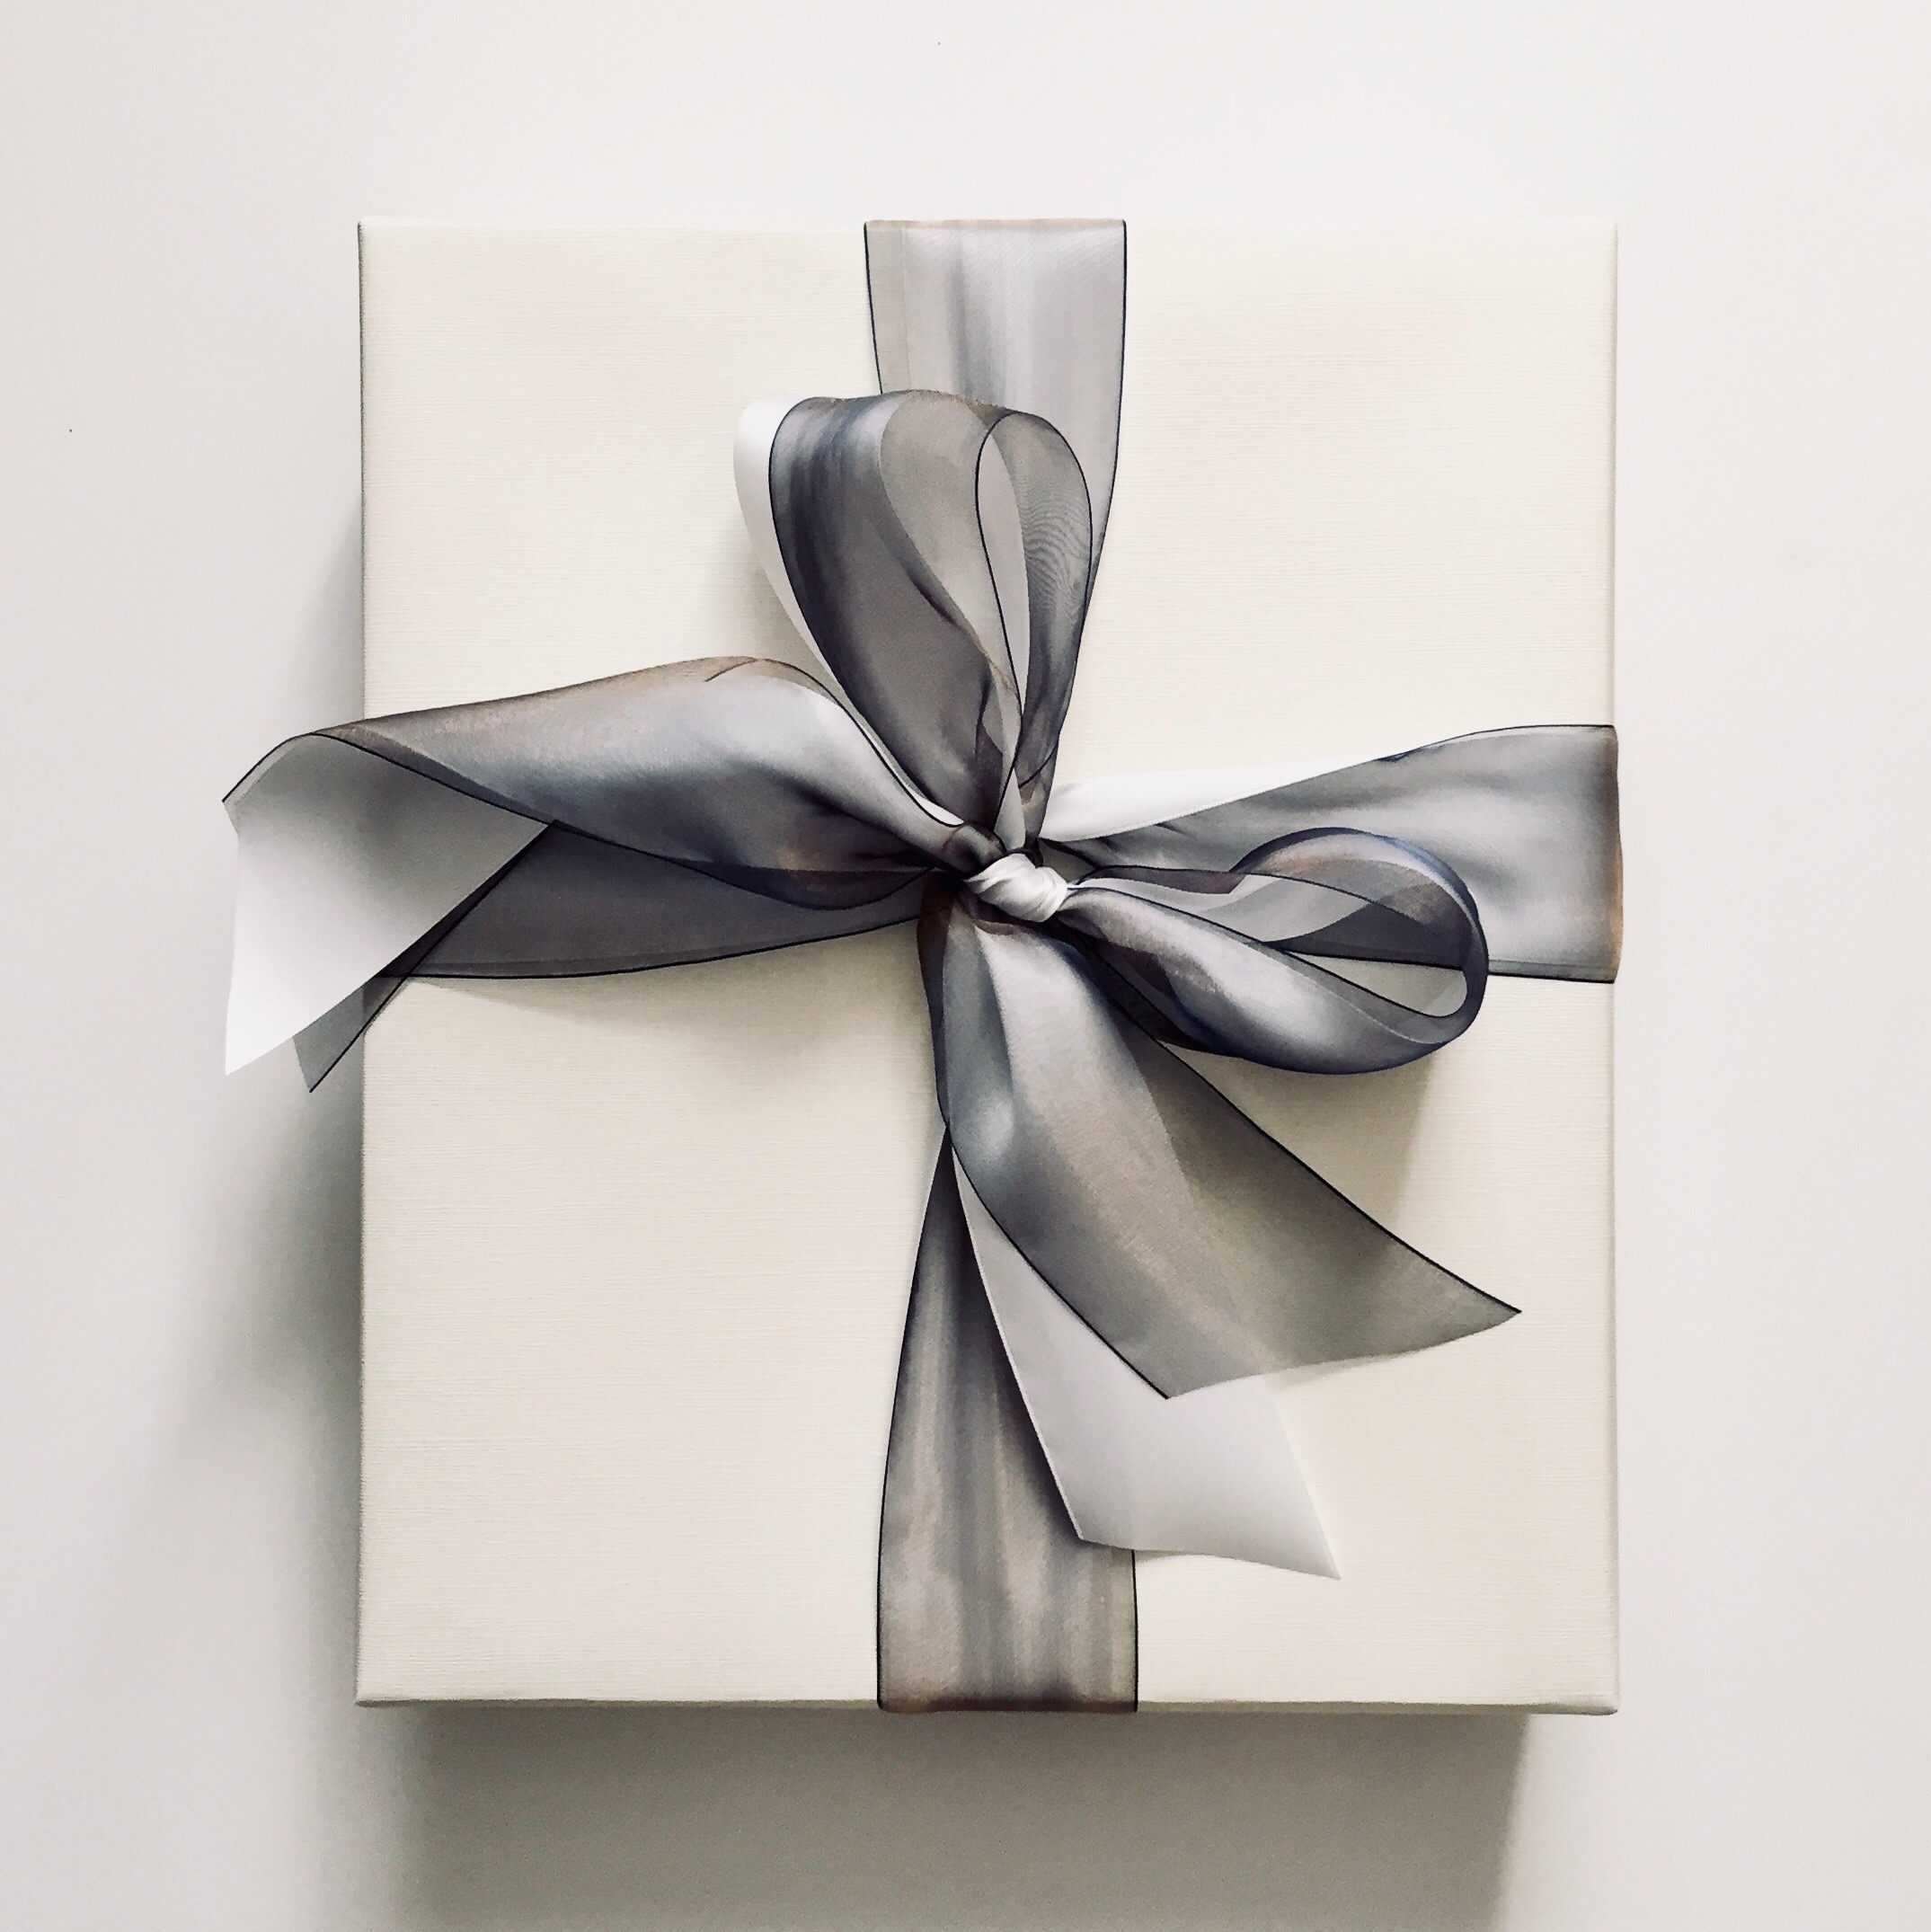 How long does it take to get a present wrapped? - My typical turnaround time (with some exceptions) is a minimum of four business days for up to 20 items; for every additional 20 items, add one day. For example, 50 gifts would take a minimum of six business days. More elaborate custom designs will take longer.Turnaround time is calculated from the time I receive items for wrapping.Depending on availability, I may be able to complete projects more quickly; on rare occasions, I can provide same-day service. (Please contact me to check.) Rush fees will apply.Please note that although I can work quickly, the more time I have to work on your project, the more design options and materials choices there will be — some options just aren't available when there are only a few days to complete a project. Timing may also affect cost, as more economical wholesale materials often require a few weeks for delivery.